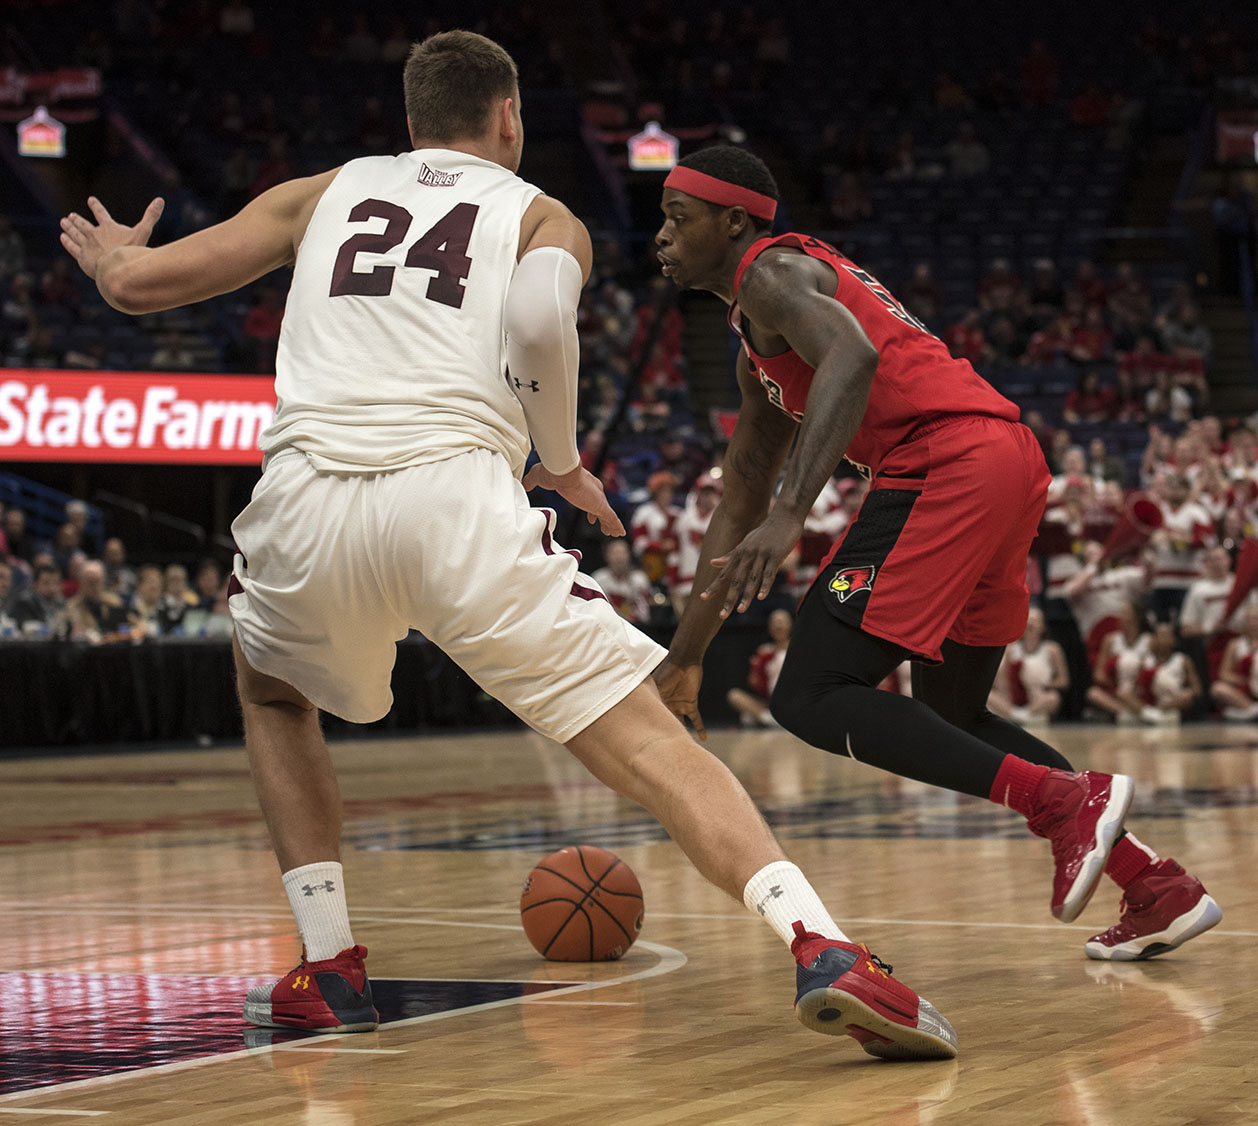 Junior+forward+Rudy+Stradnieks+looks+to+block+a+player+Saturday%2C+March.+3%2C+2018%2C+during+the+Salukis%E2%80%99+76-68+loss+against+the+Illinois+State+Redbirds+at+the+Missouri+Valley+Conference+%22Arch+Madness%22+tournament+in+St.+Louis.+%28Athena+Chrysanthou+%7C+%40Chrysant1Athena%29